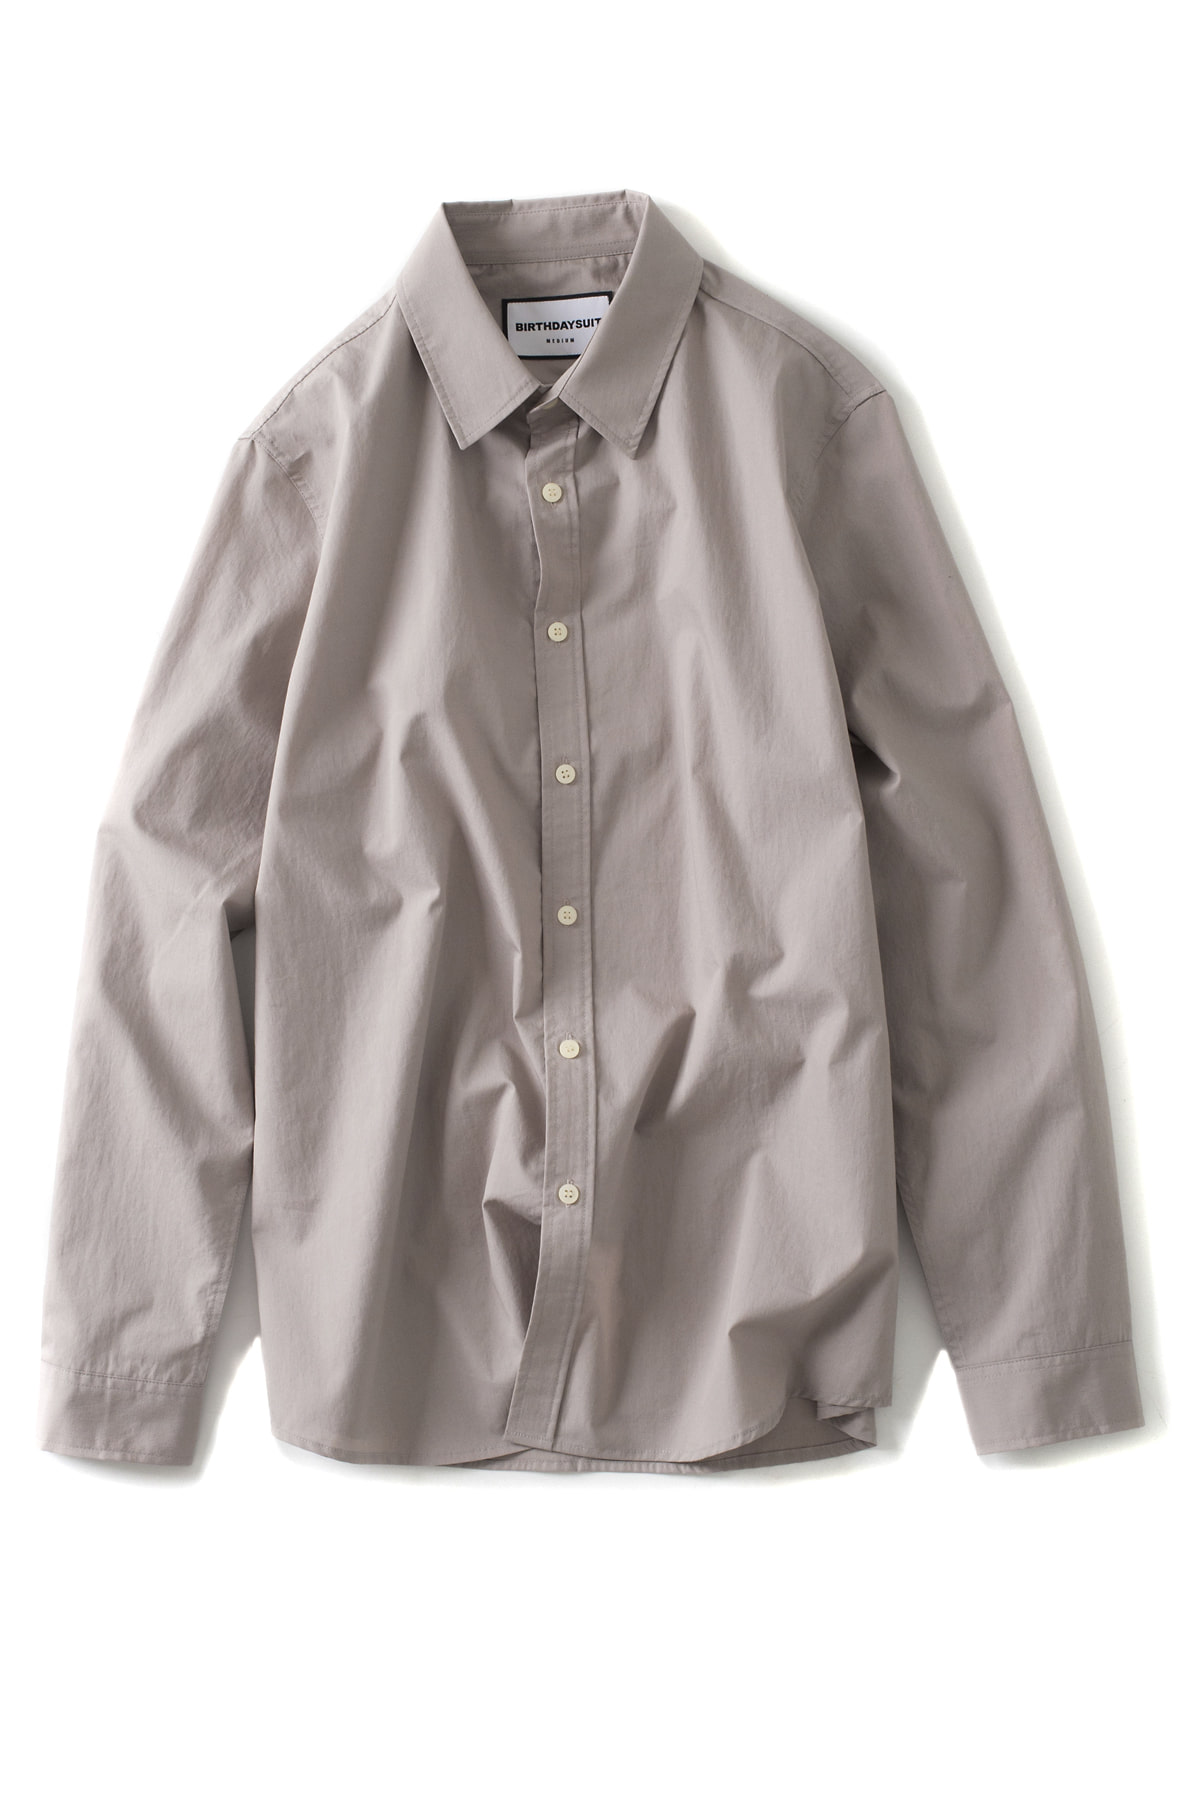 BIRTHDAYSUIT : Basic Shirt (Beige Grey)